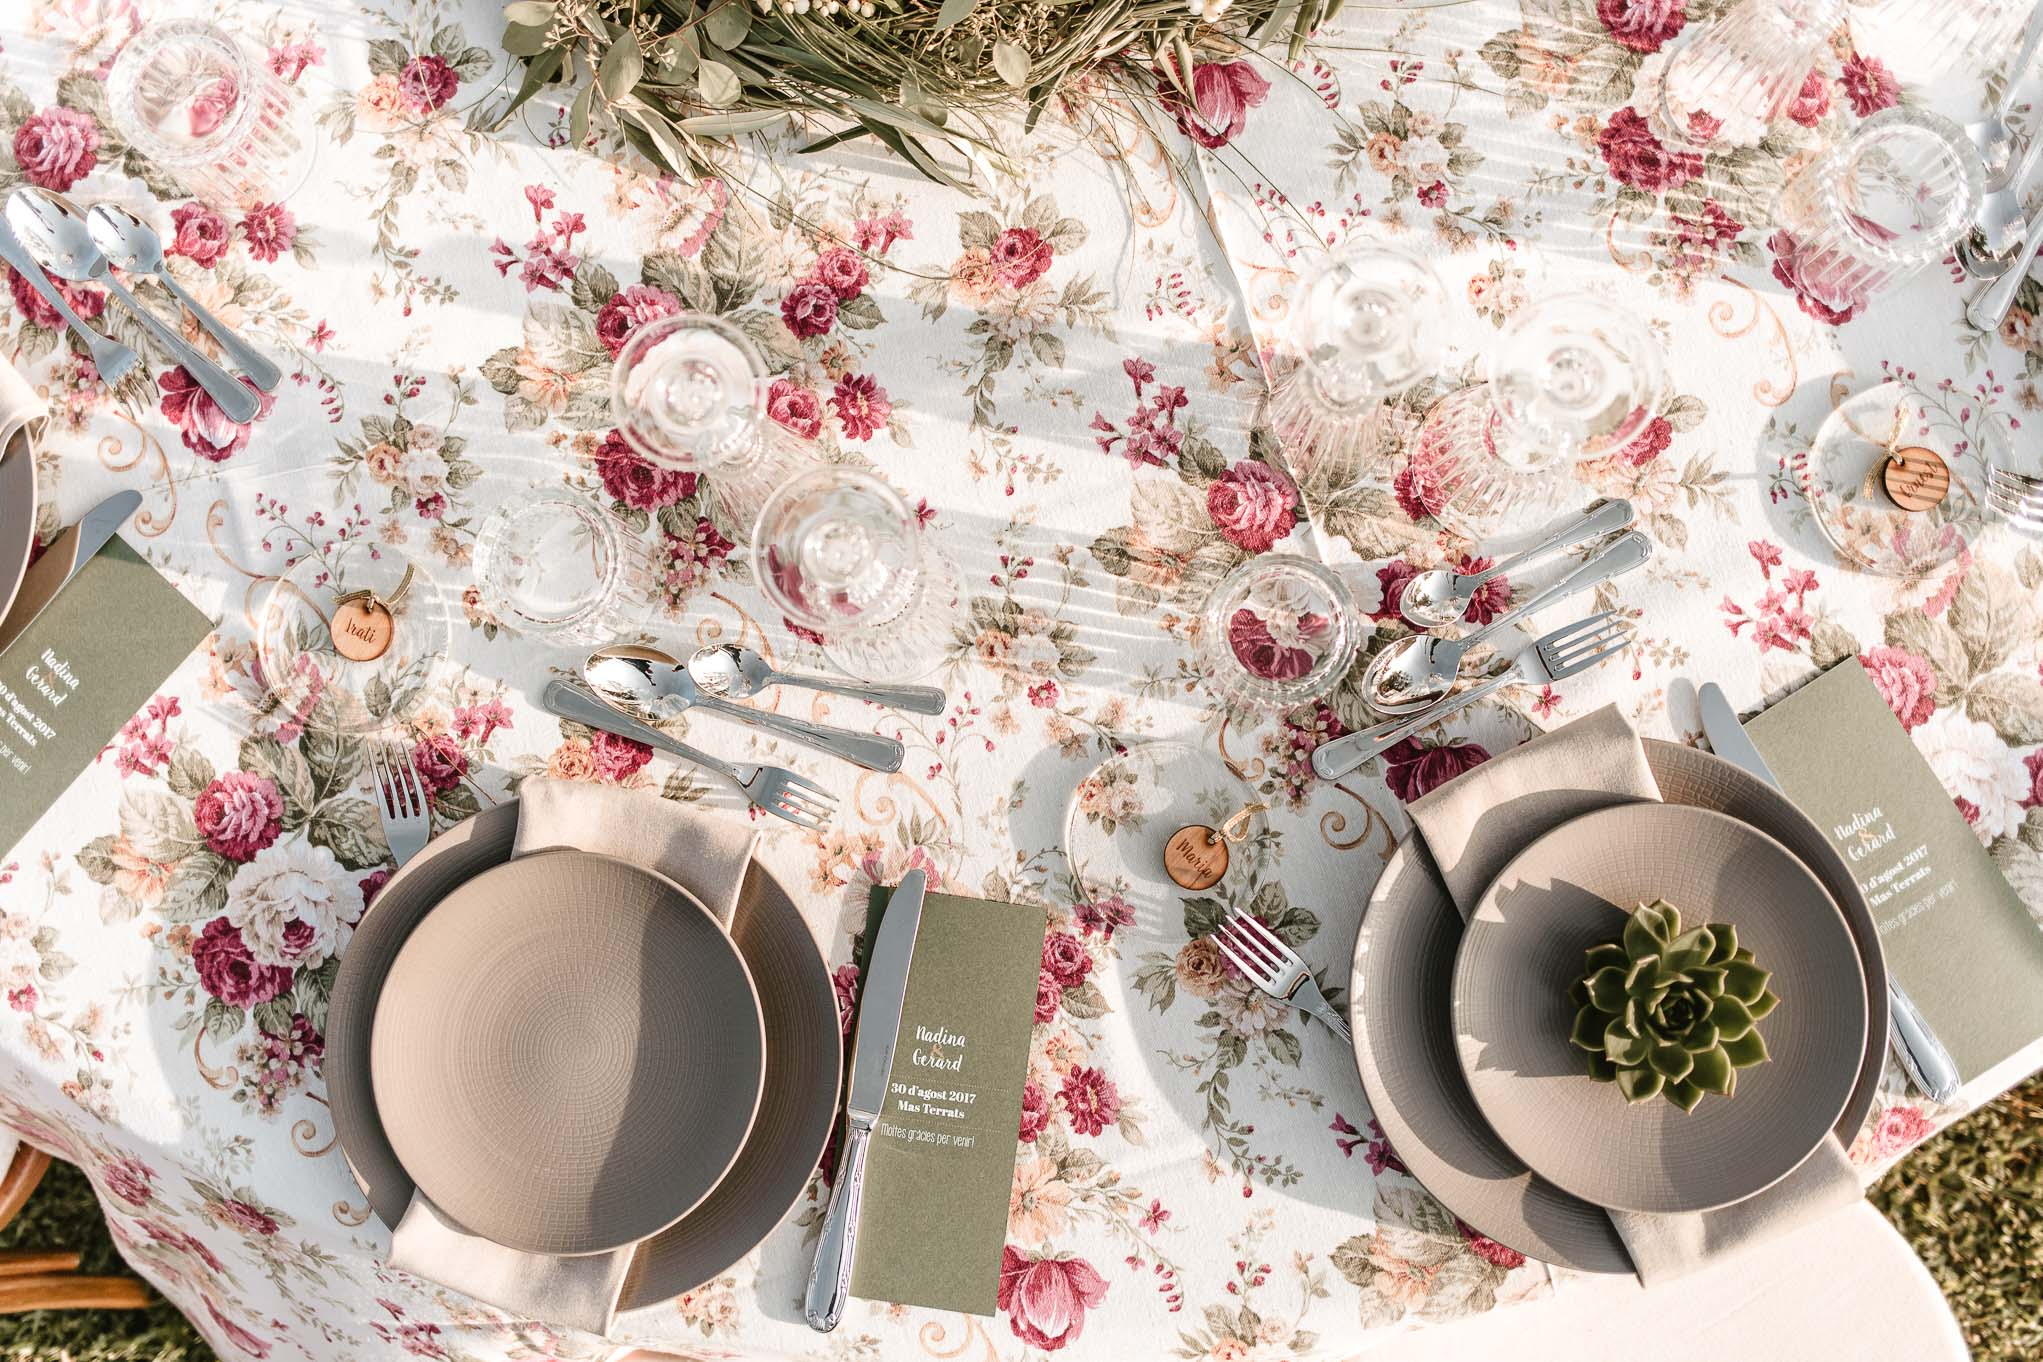 té-flatlay-café-wedding table- mesas de bodas